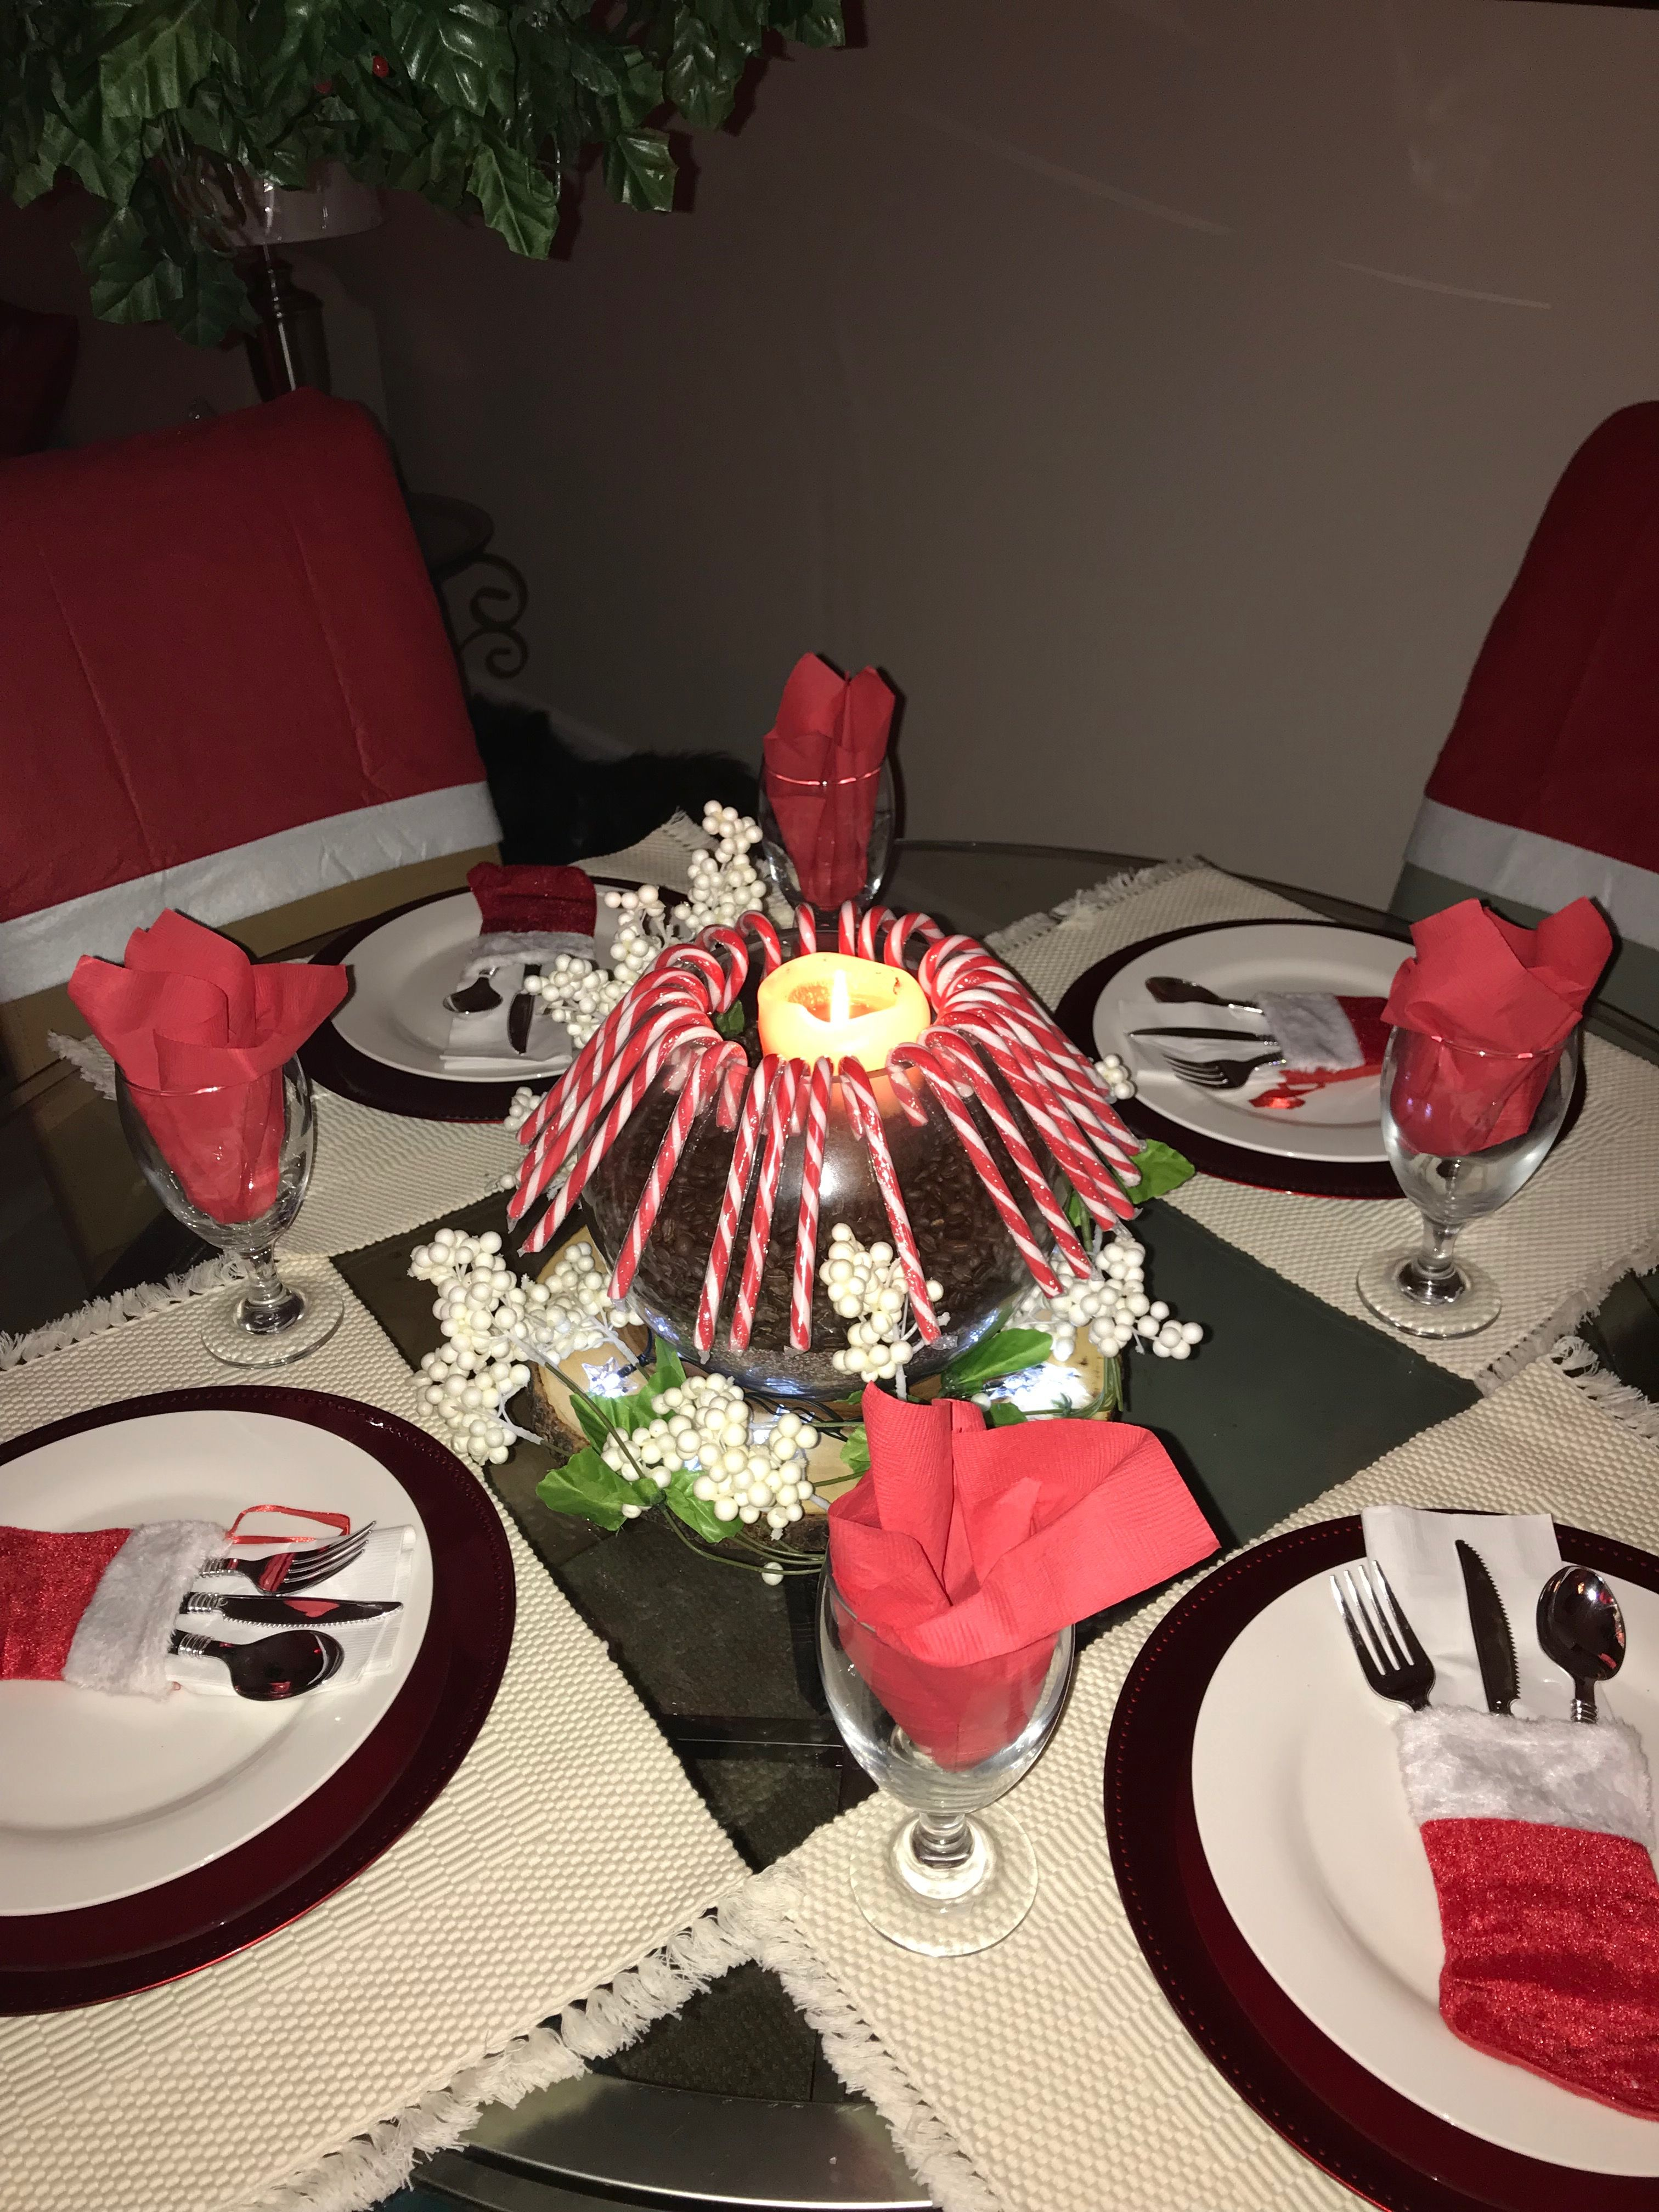 My Christmas Table Deco all from Dollar Tree for just